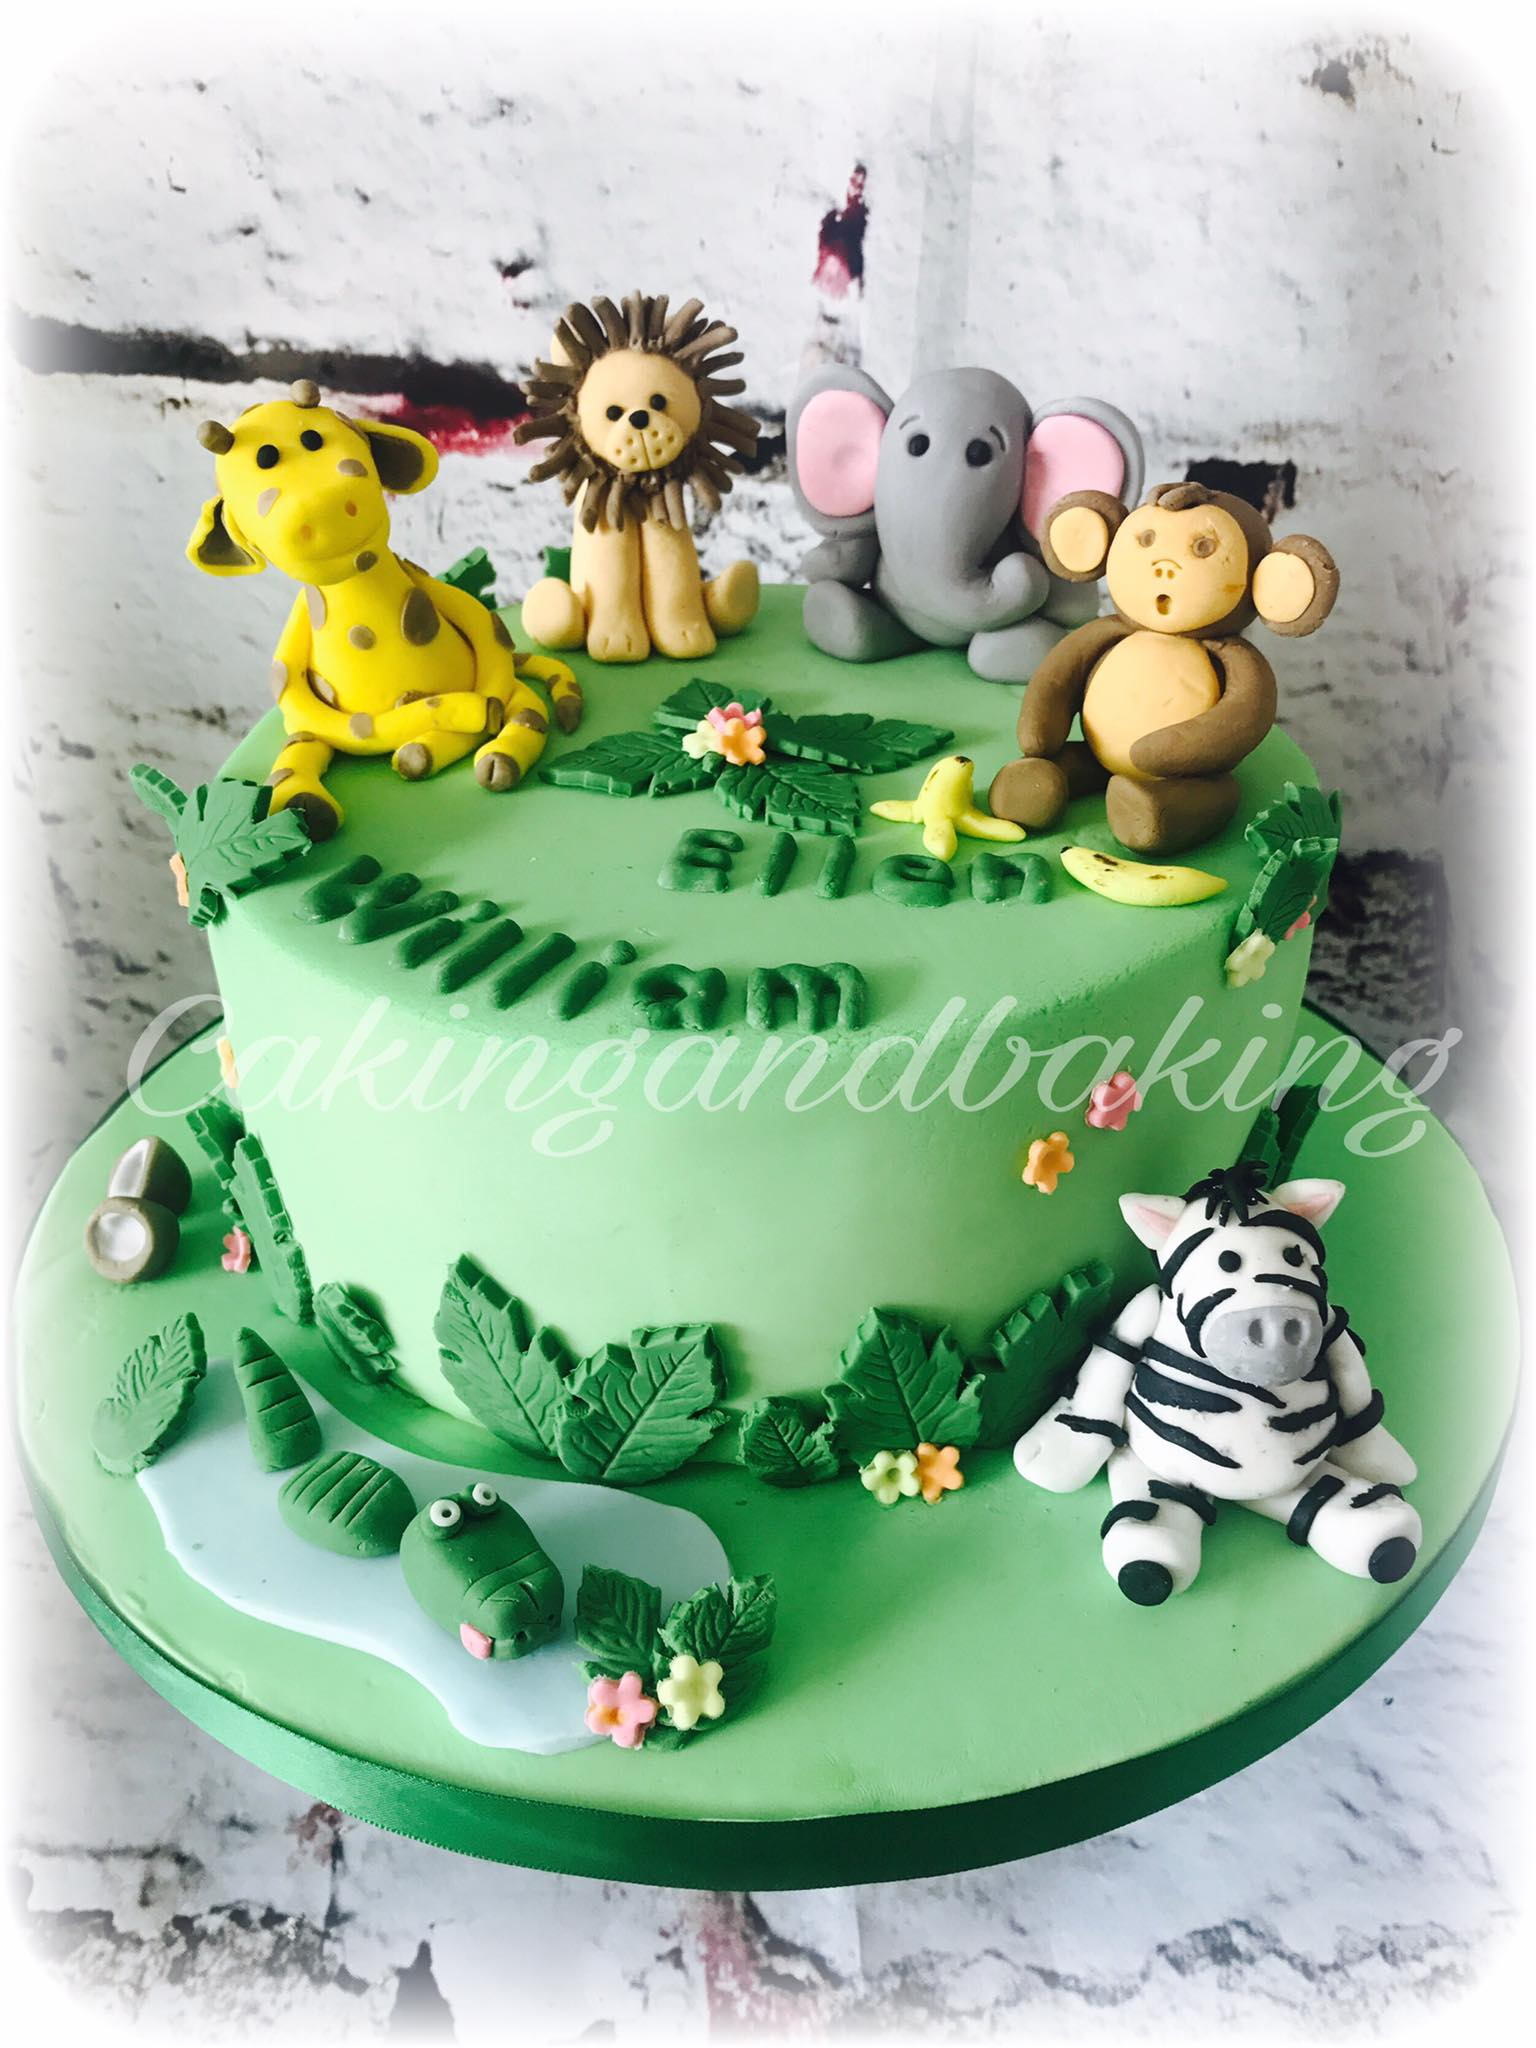 Jungle Animals Cake O Caking And Baking Leamington Spa Warwickshire